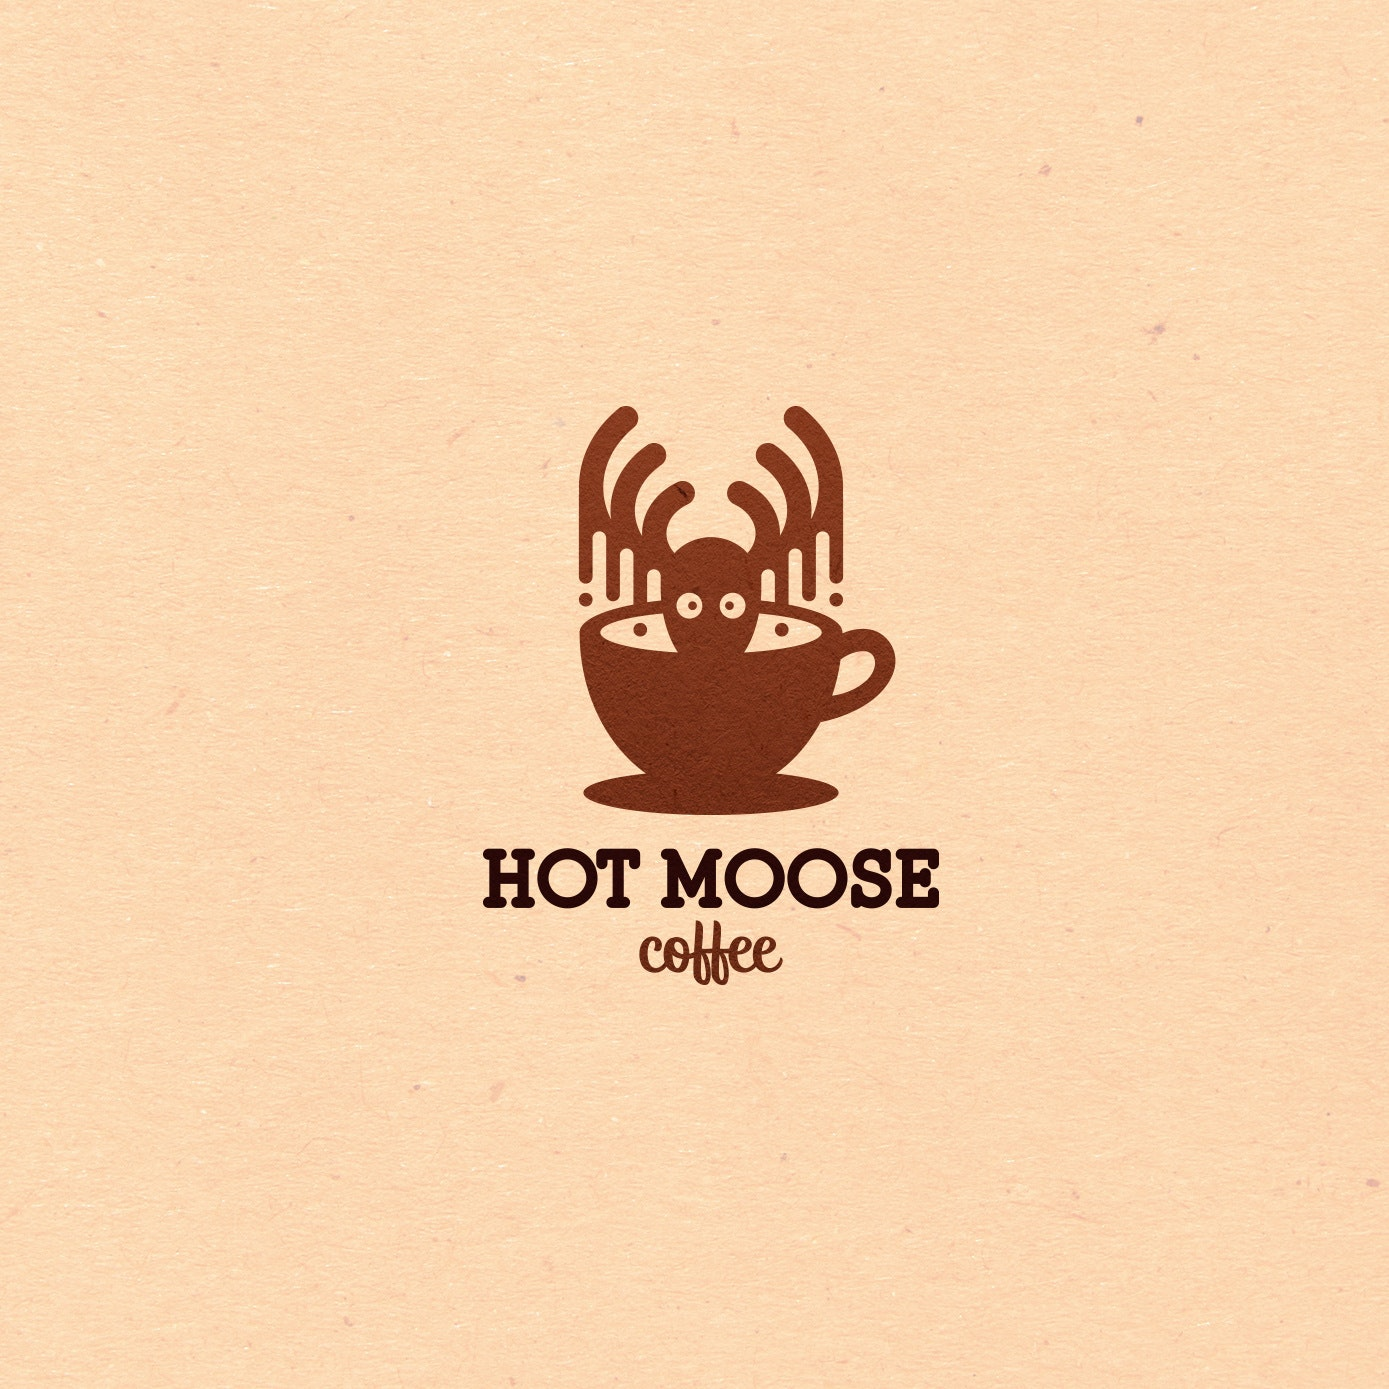 playful moose coffee logo design